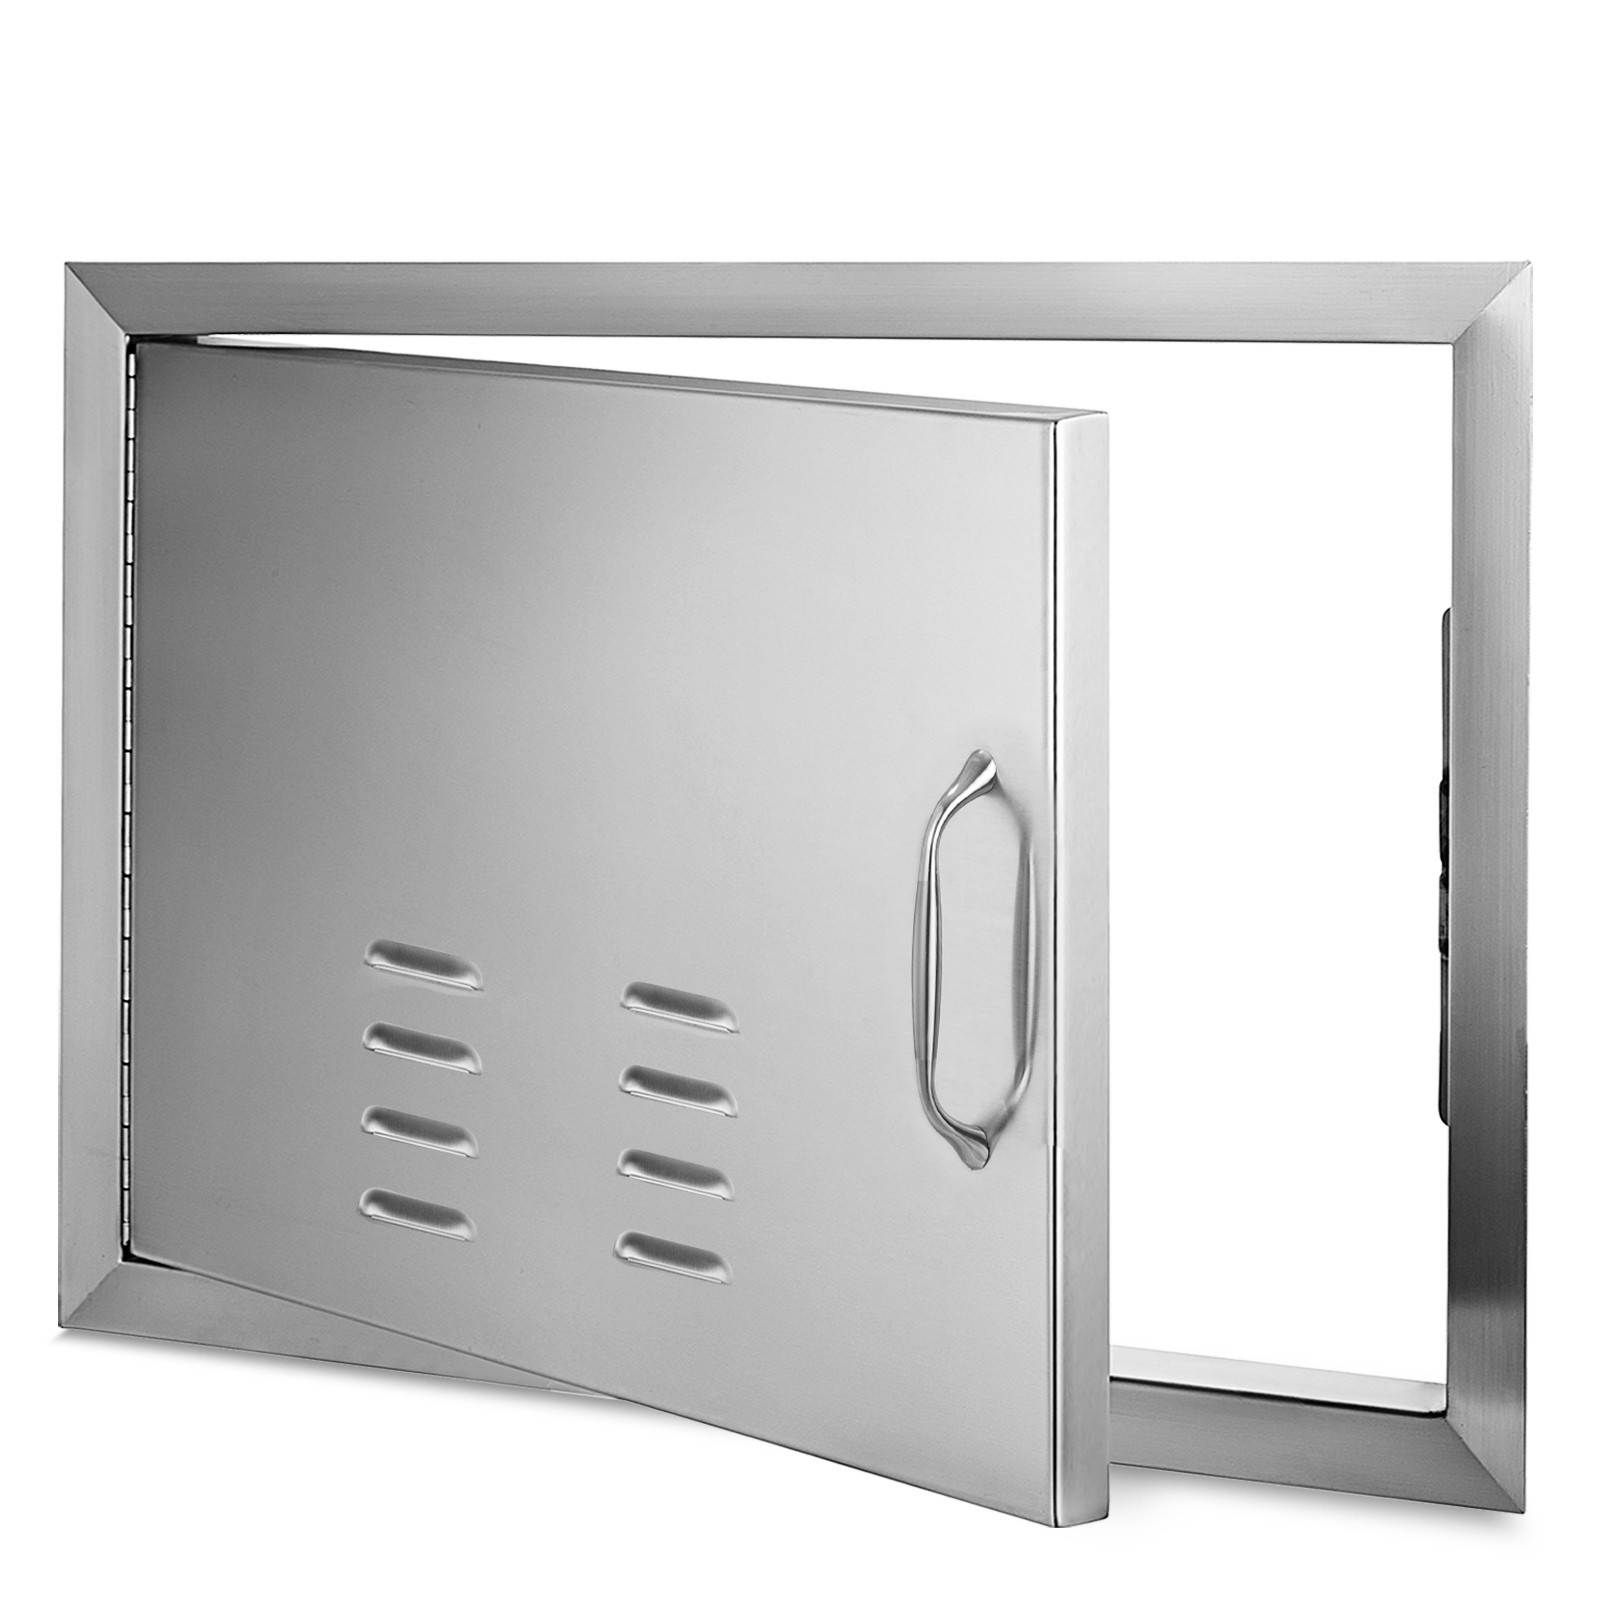 Details about Outdoor Kitchen BBQ Island Components Stainless Steel Access  Door And Drawer